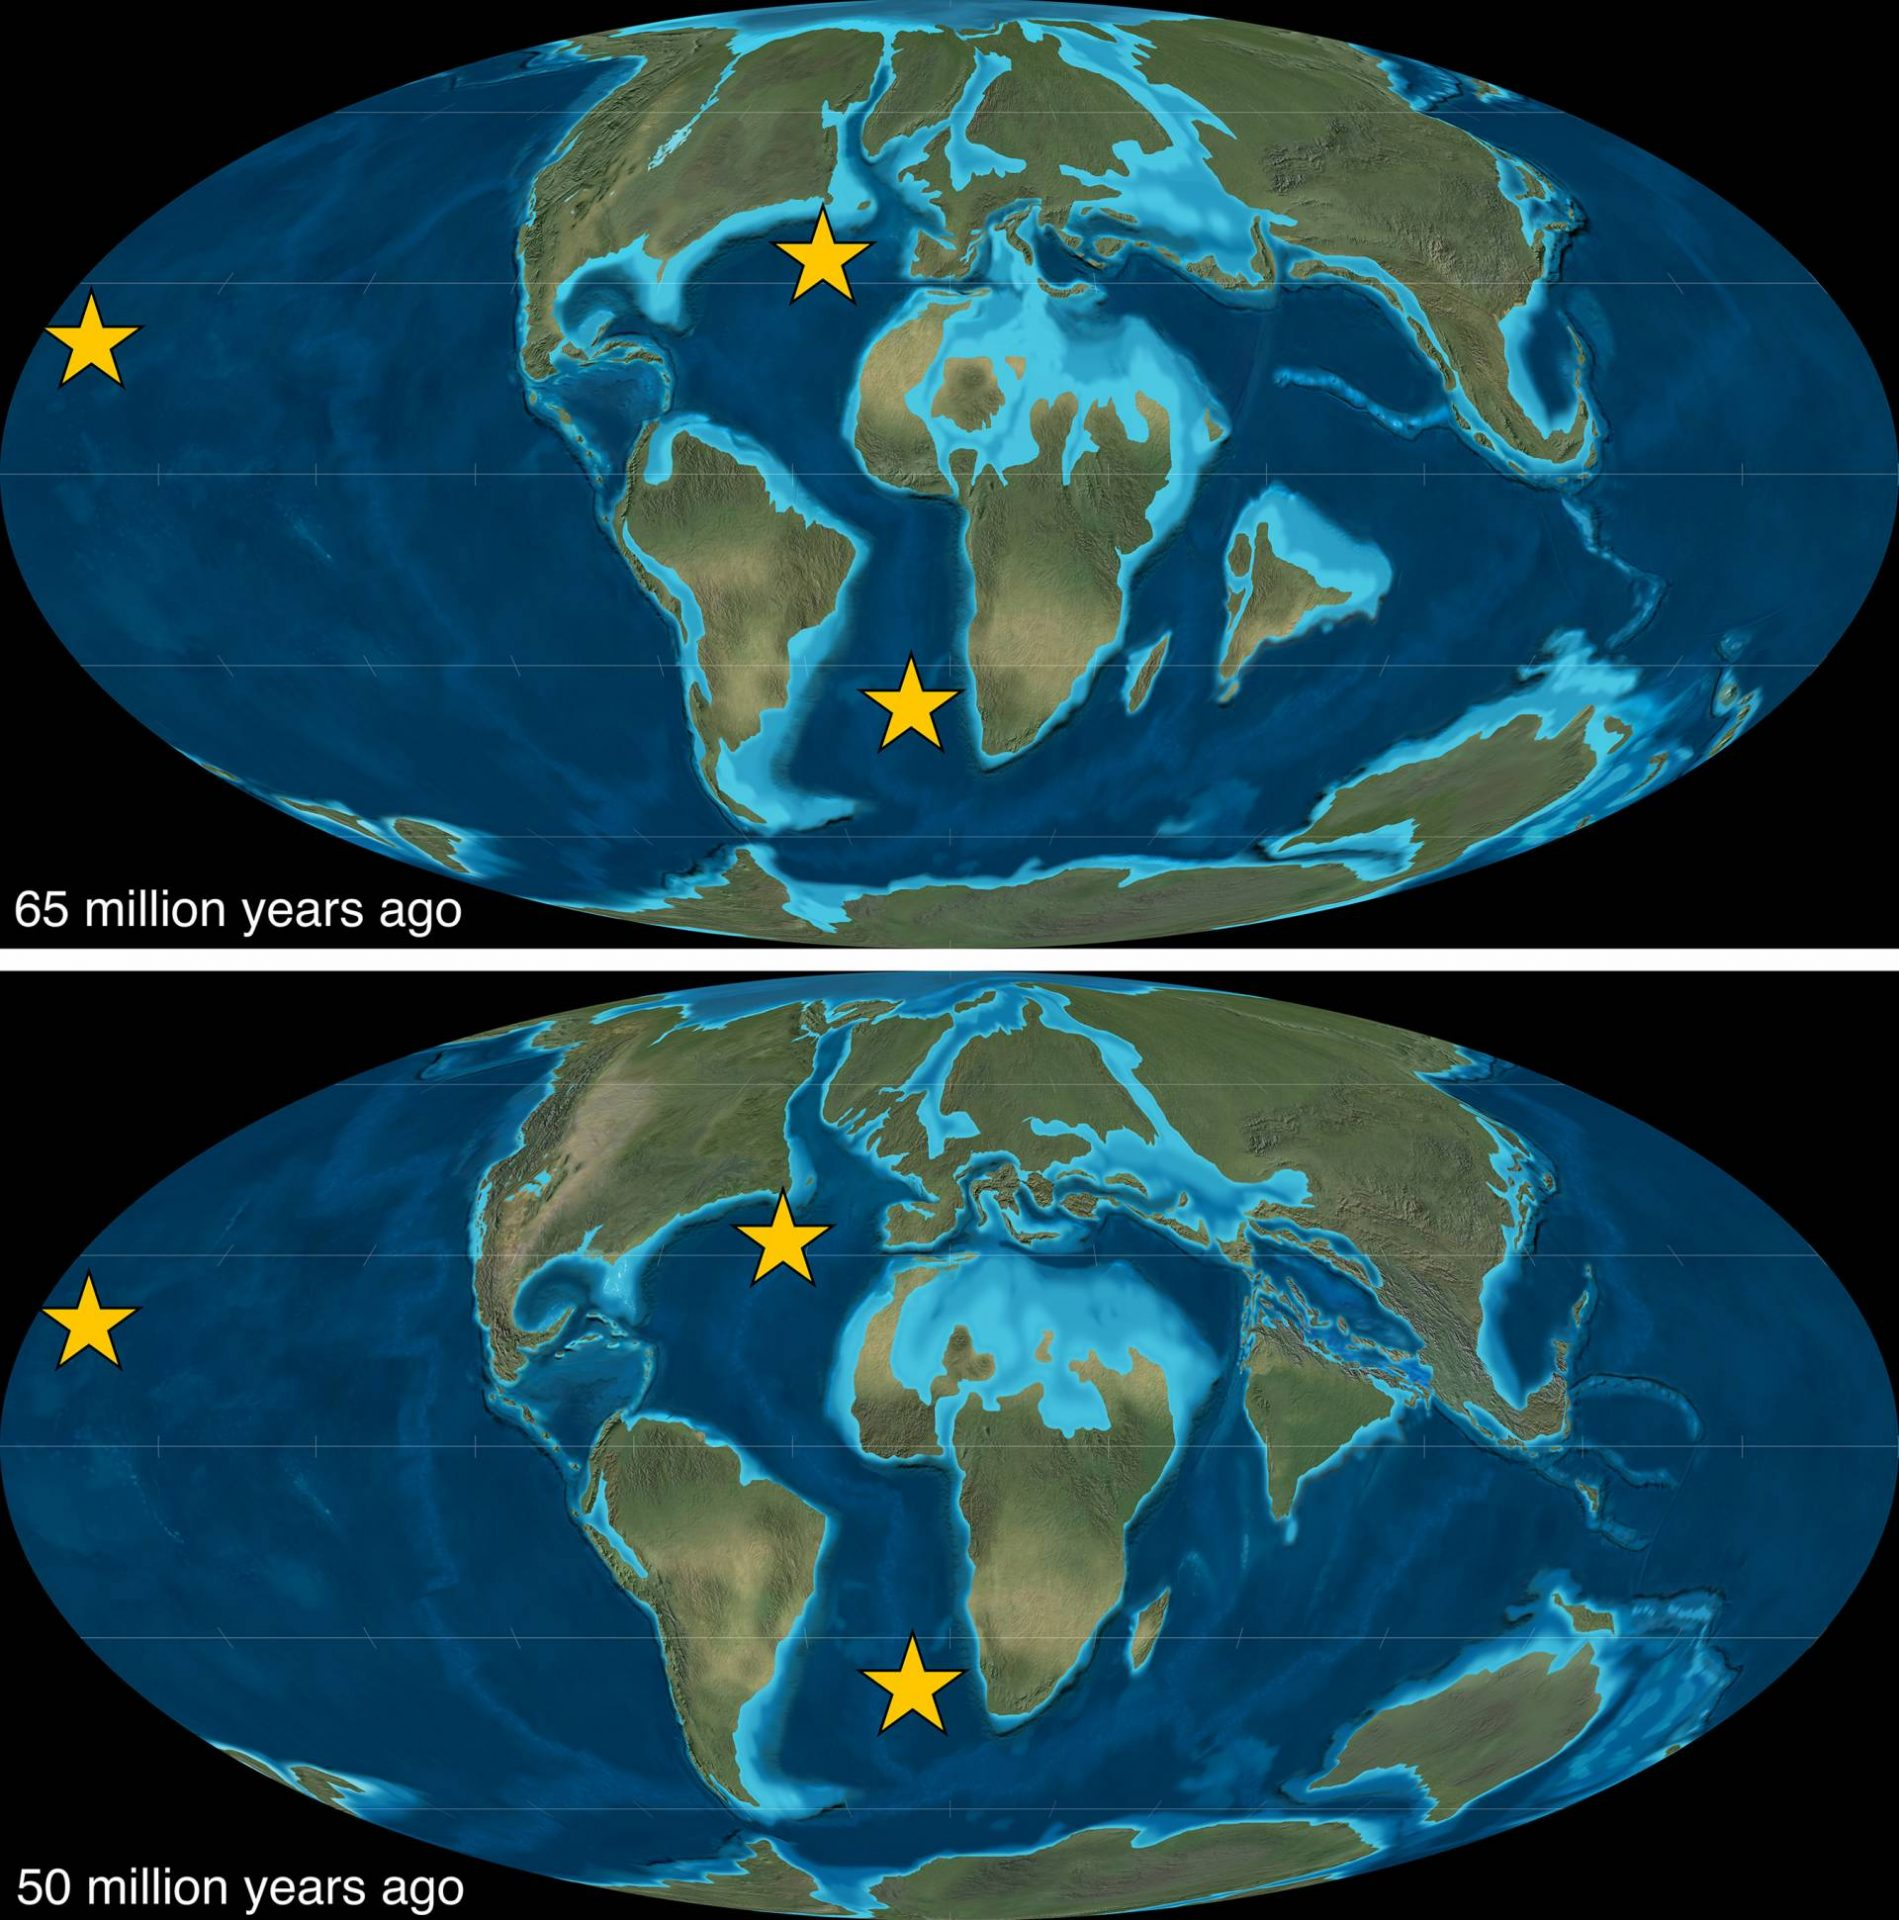 "Neither the continents nor the oceans have always looked the way they do now. These ""paleomaps"" show how the continents and oceans appeared before (top) and during (bottom) ""the collision that changed the world,"" when the landmass that is now the Indian subcontinent rammed northward into Asia, closing the Tethys Sea and building the Himalayas. Global ocean levels were higher then, creating salty shallow seas (pale blue) that covered much of North Africa and parts of each of the continents. A team of Princeton researchers, using samples gathered at the three starred locations, created an unprecedented record of ocean nitrogen and oxygen levels from 70 million years ago through 30 million years ago that shows a major shift in ocean chemistry after the India-Asia collision. Another shift came 35 million years ago, when Antarctica began accumulating ice and global sea levels fell. (Images created by Emma Kast, Princeton University, using paleogeographic reconstructions from Deep Time Maps, with their permission)"